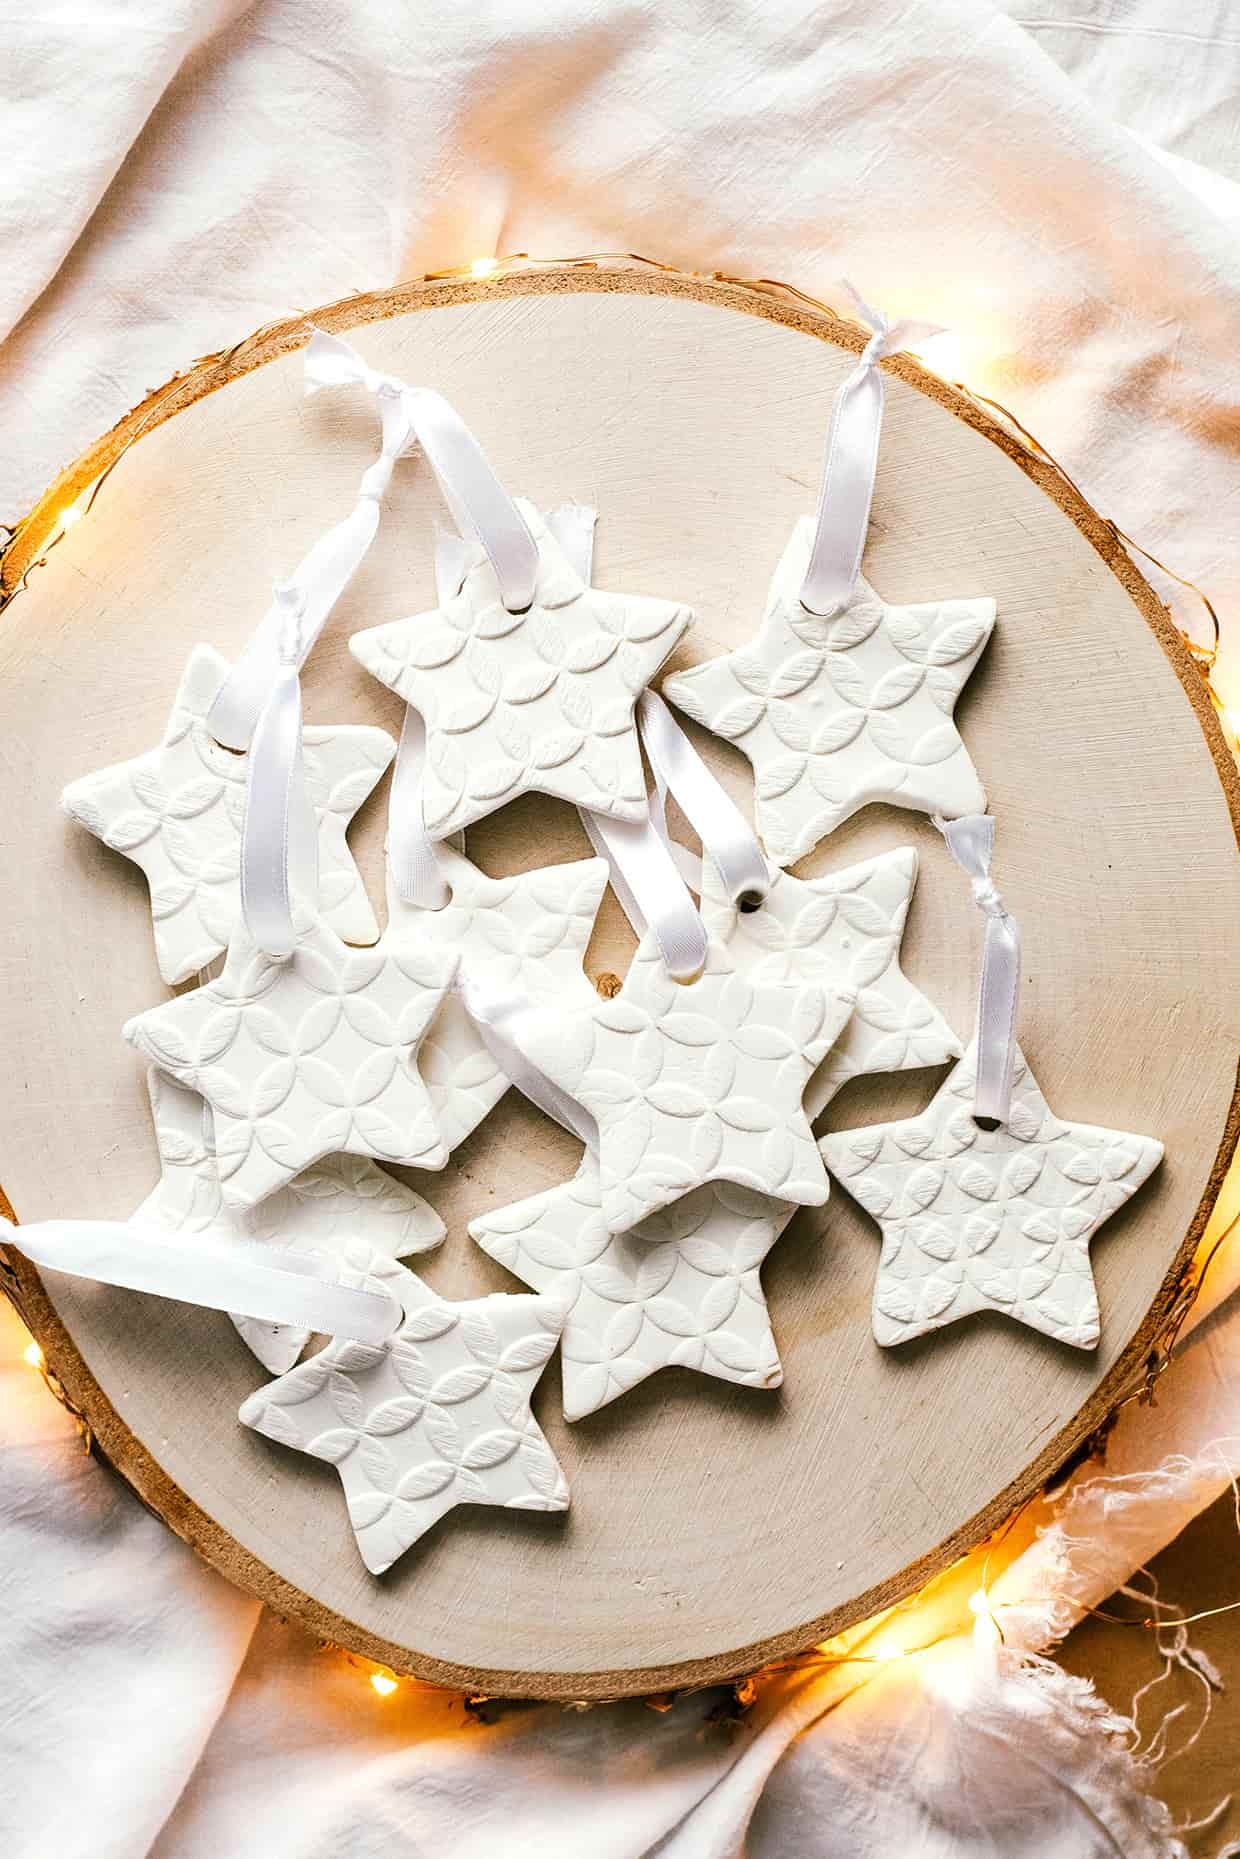 Homemade scented baking soda ornaments